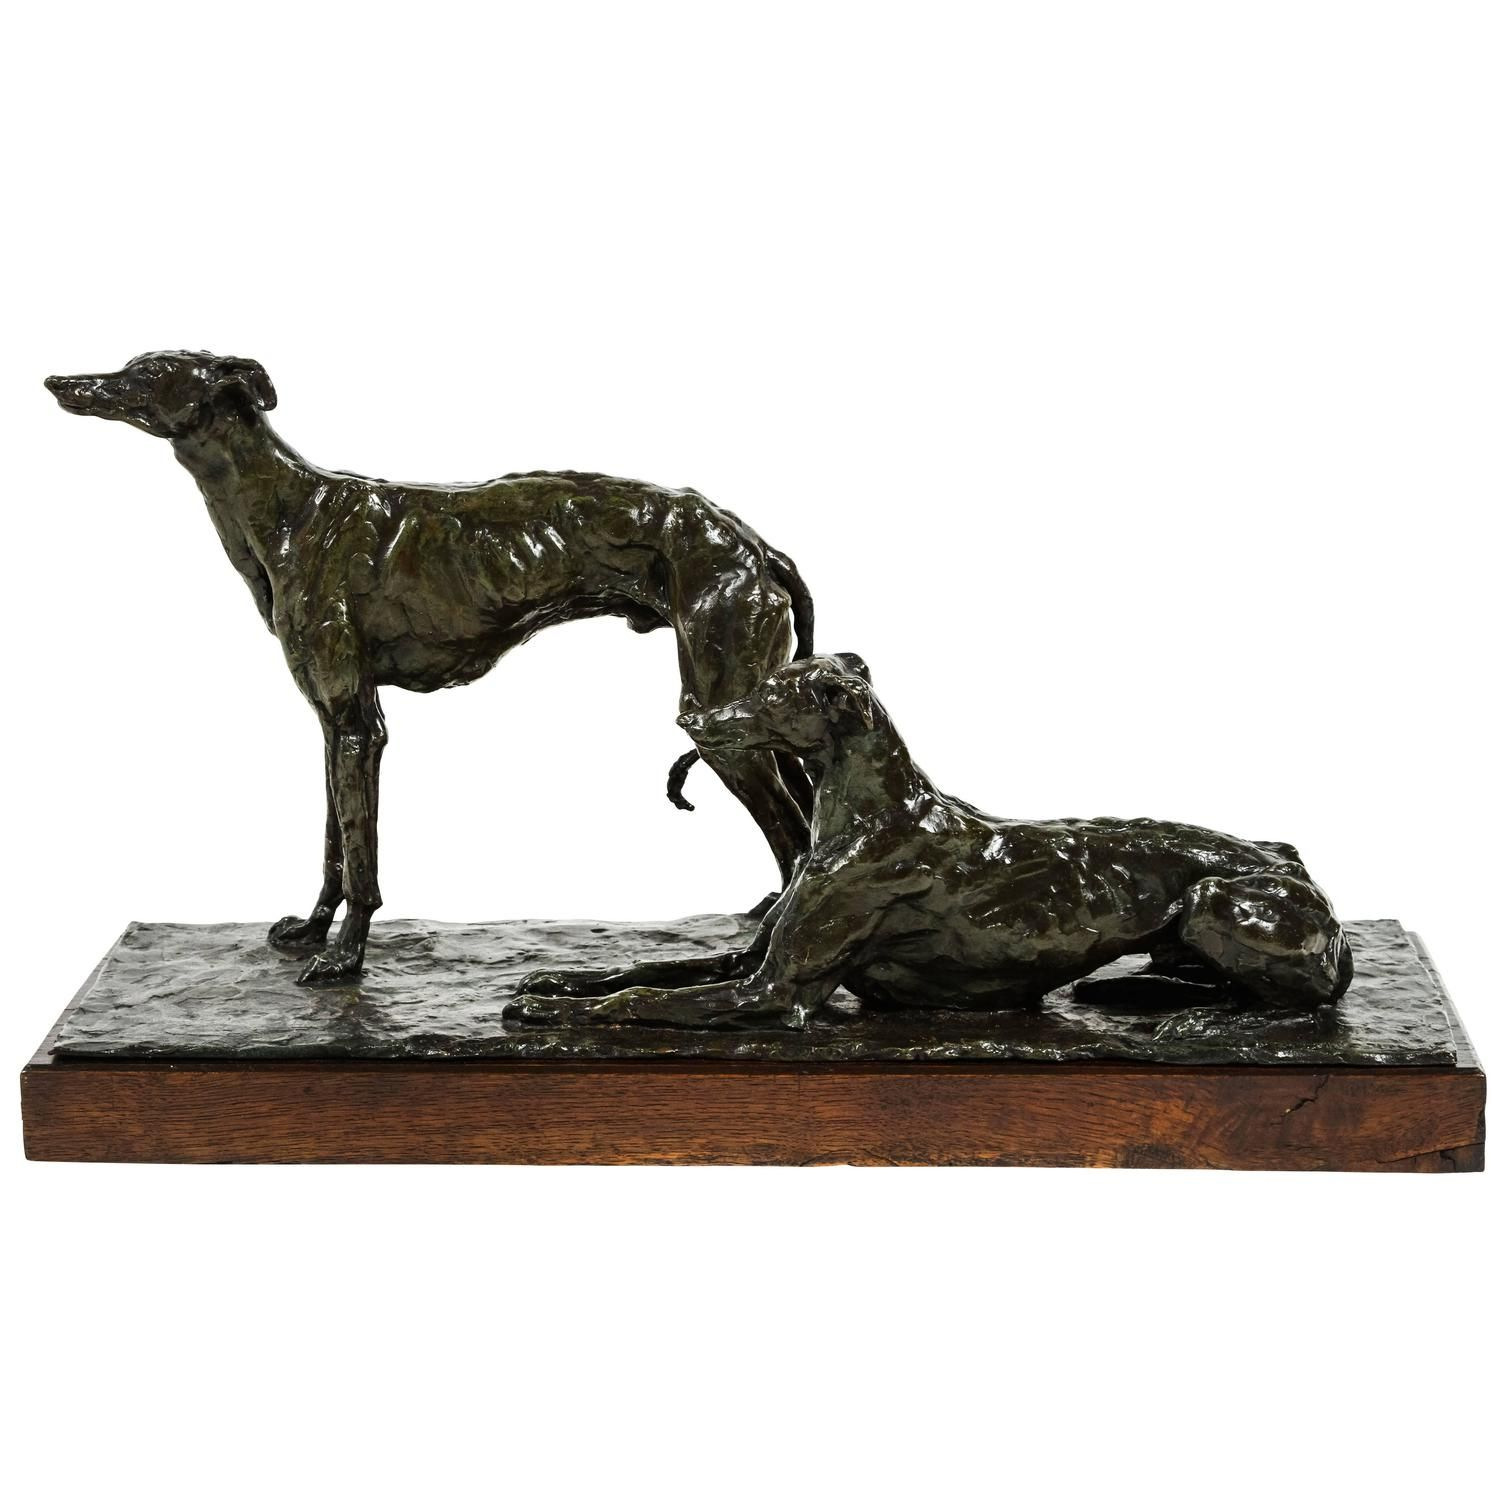 Unique French Cire Perdu Bronze of Greyhounds by Ir�n�e Rochard | From a unique collection of antique and modern sculptures at https://www.1stdibs.com/furniture/decorative-objects/sculptures/